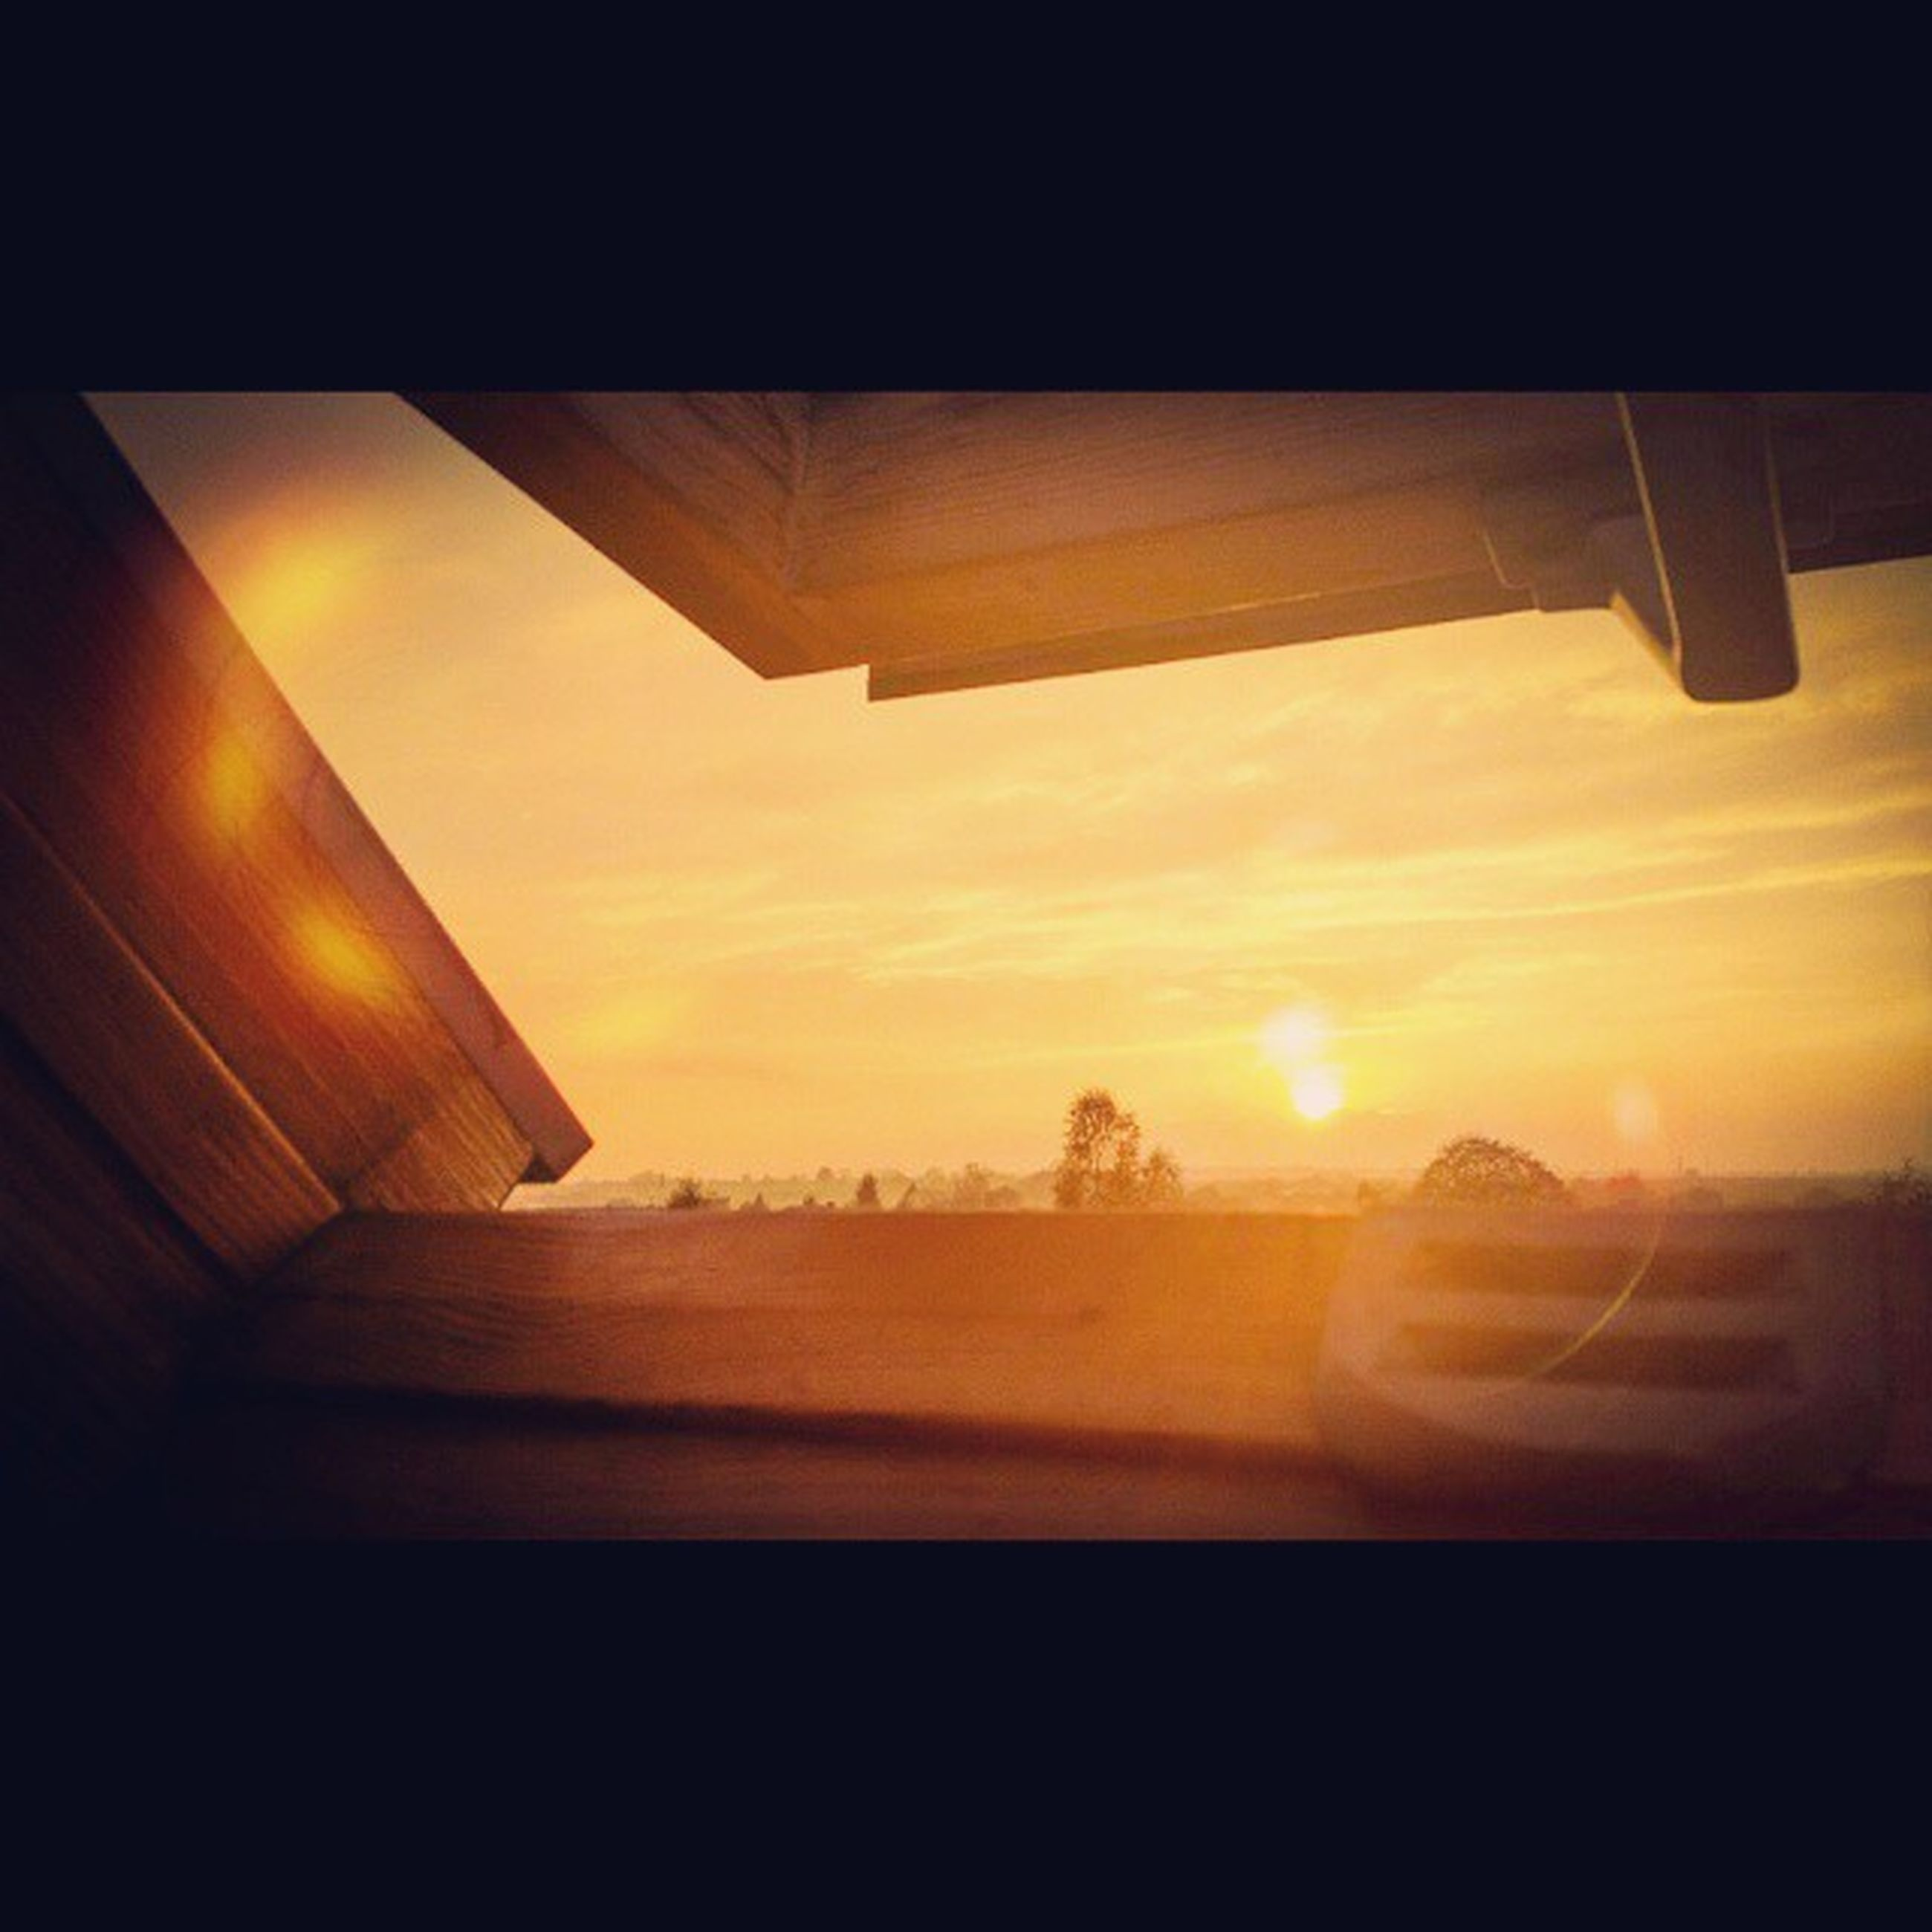 sunset, sun, orange color, transportation, sunlight, sky, built structure, indoors, architecture, glass - material, sunbeam, window, mode of transport, airplane, reflection, lens flare, transparent, no people, air vehicle, silhouette